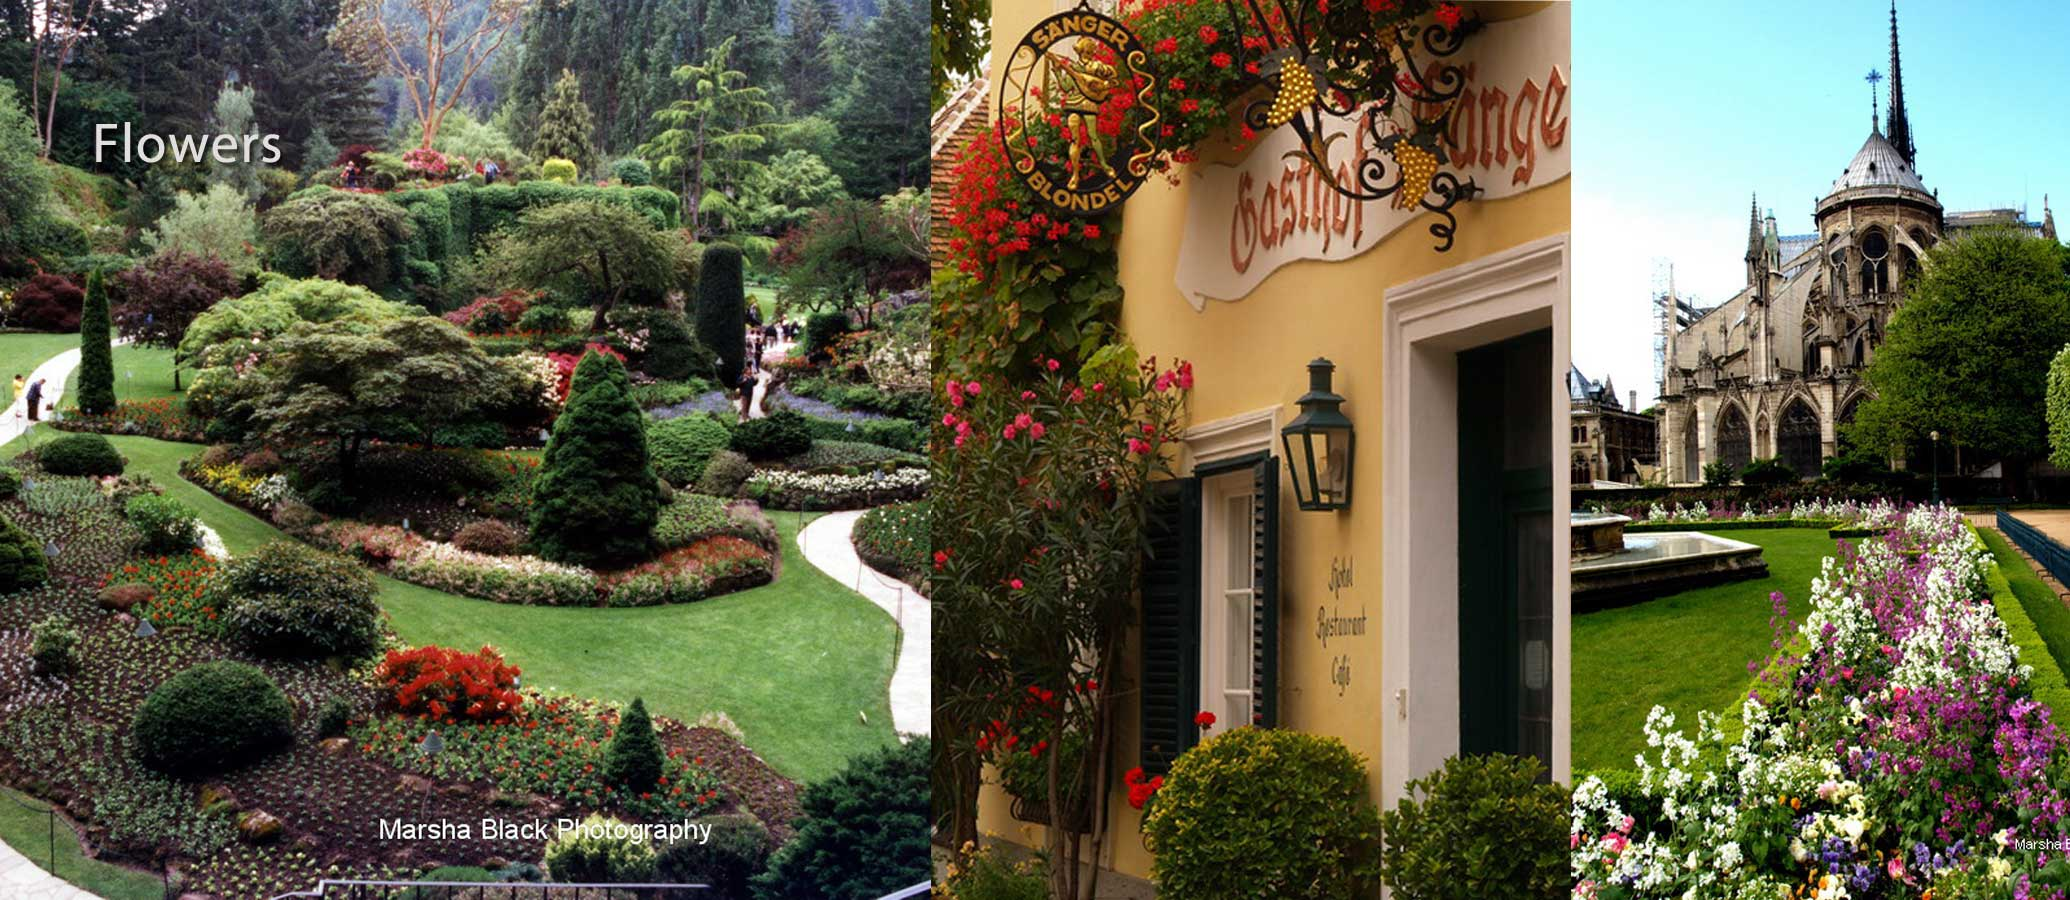 Photo Collage: (l to r): Butchart Gardens, Victoria B.C.; climbing red flowers decorating the entrance to an Austrian B &B, Paris Notre Dame gardens